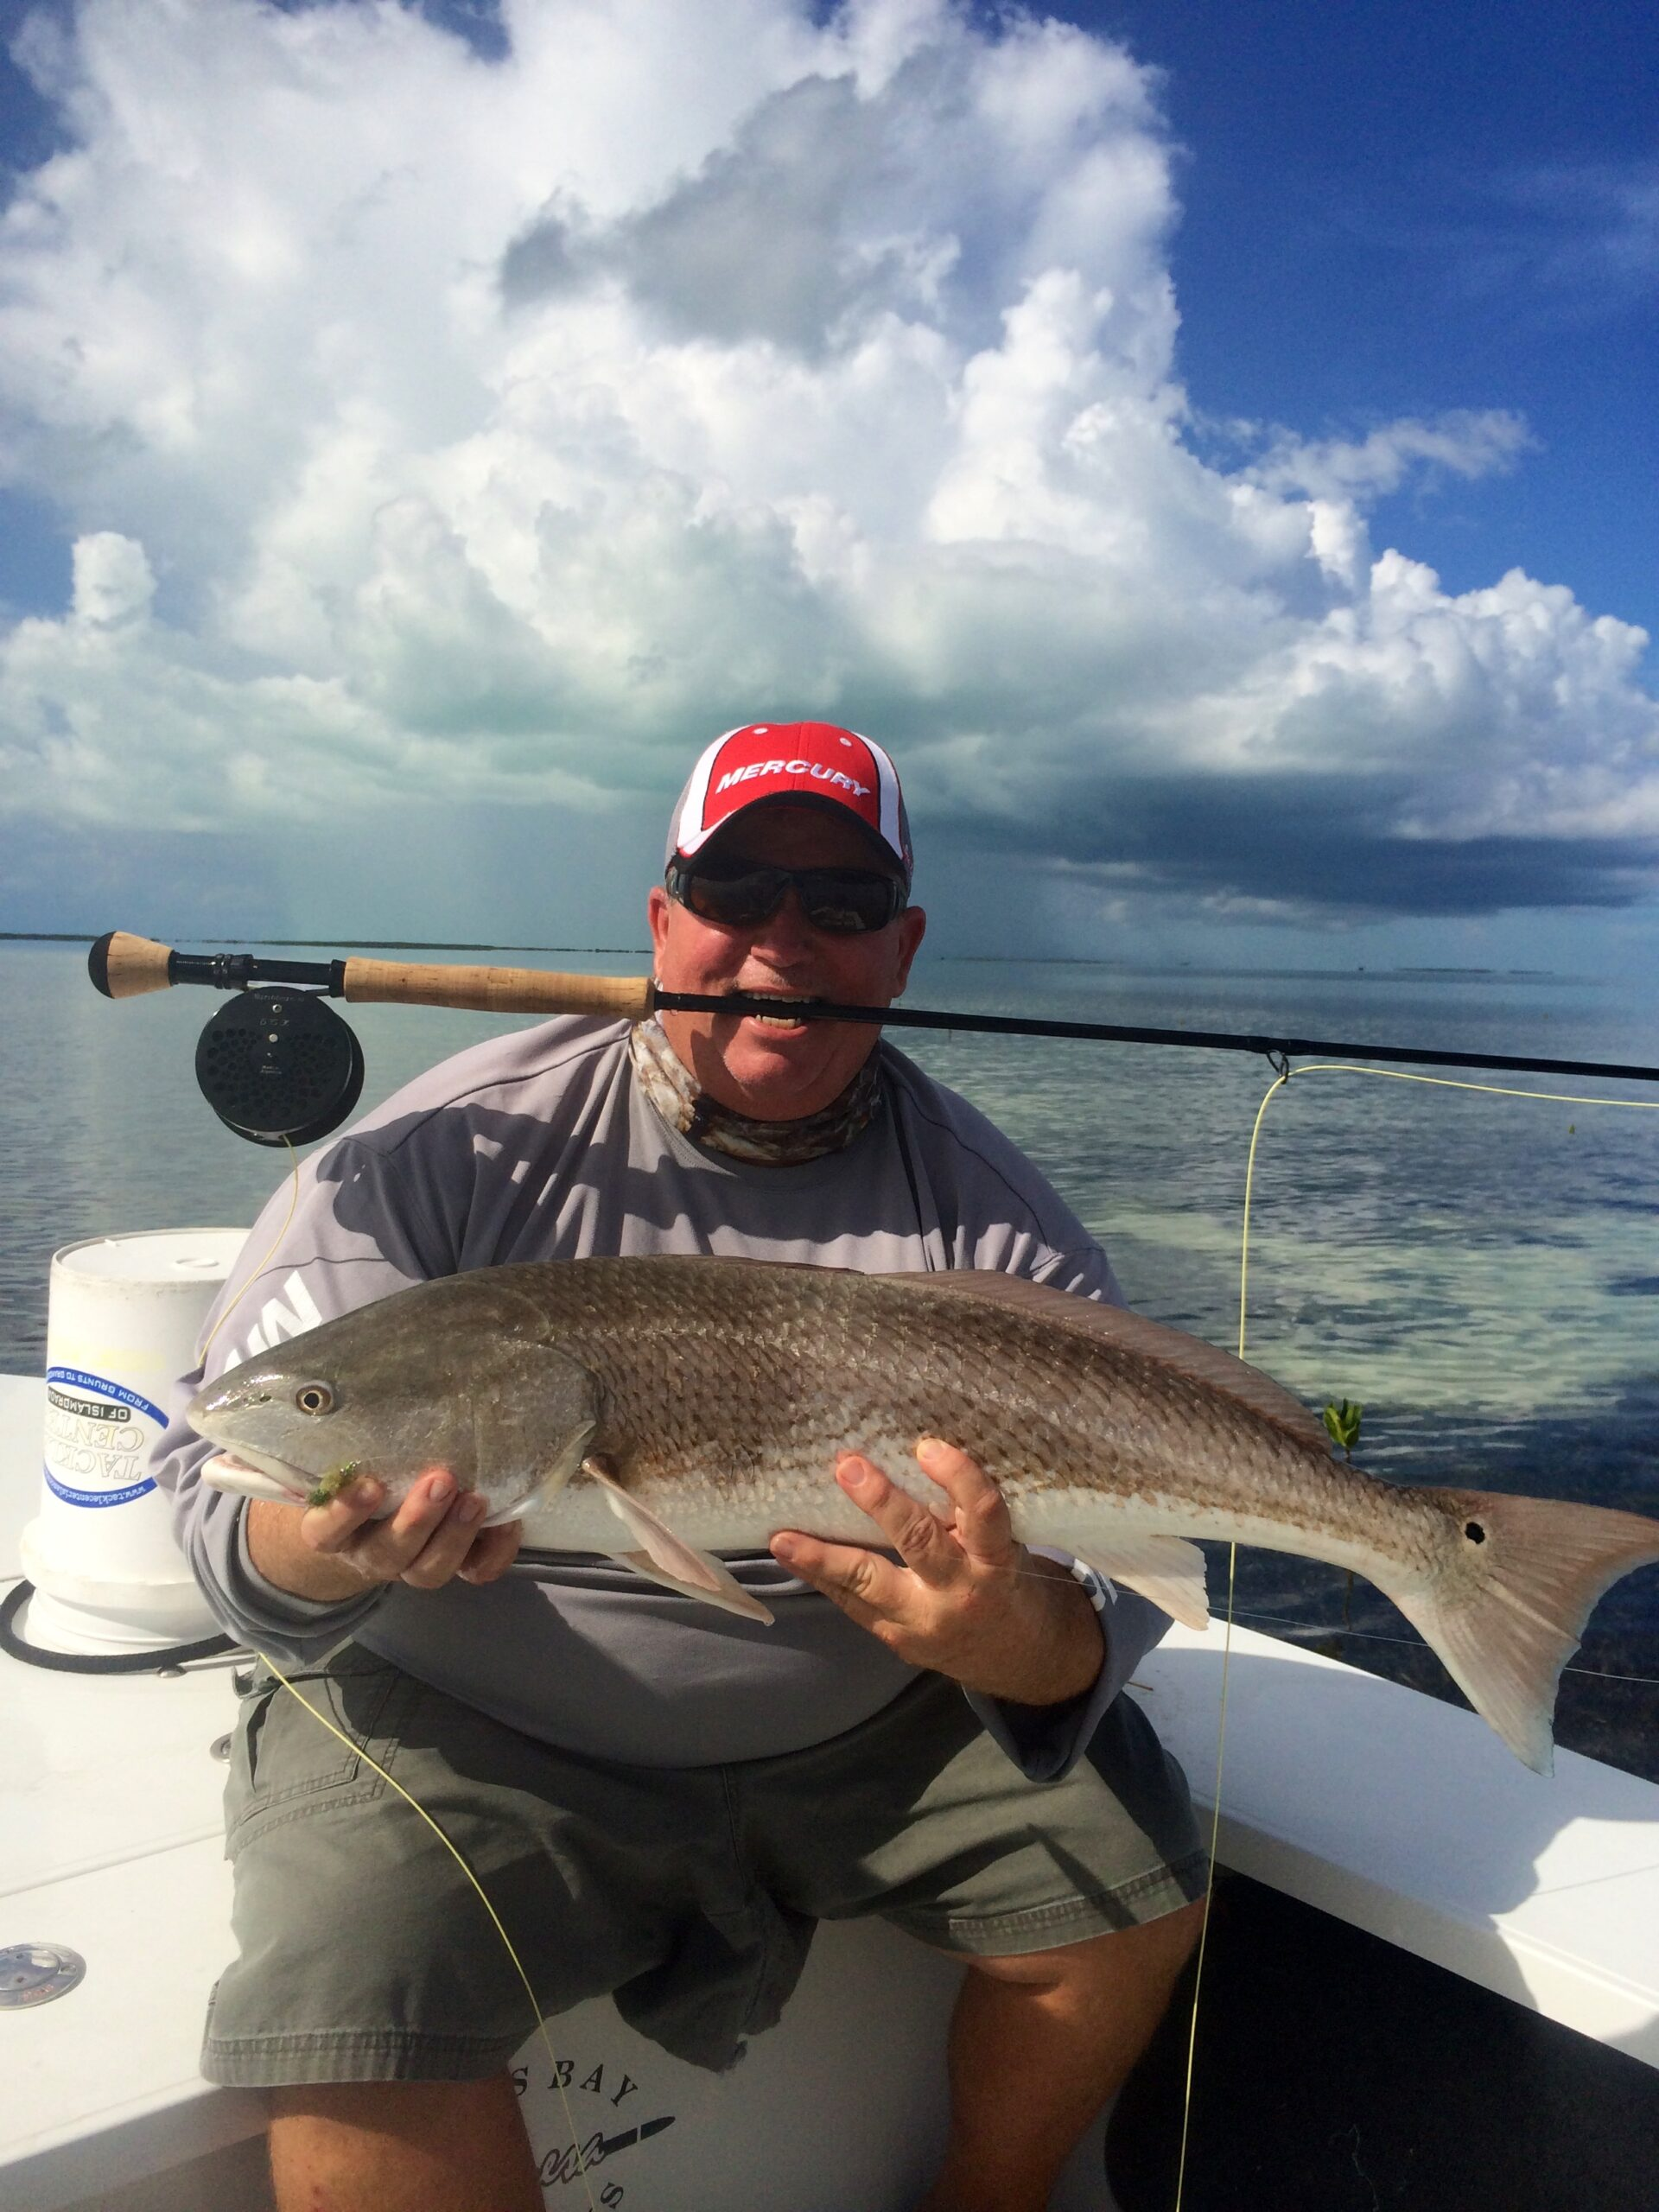 Funny man with fly rod in mouth holding a Redfish. Opens a photo gallery.